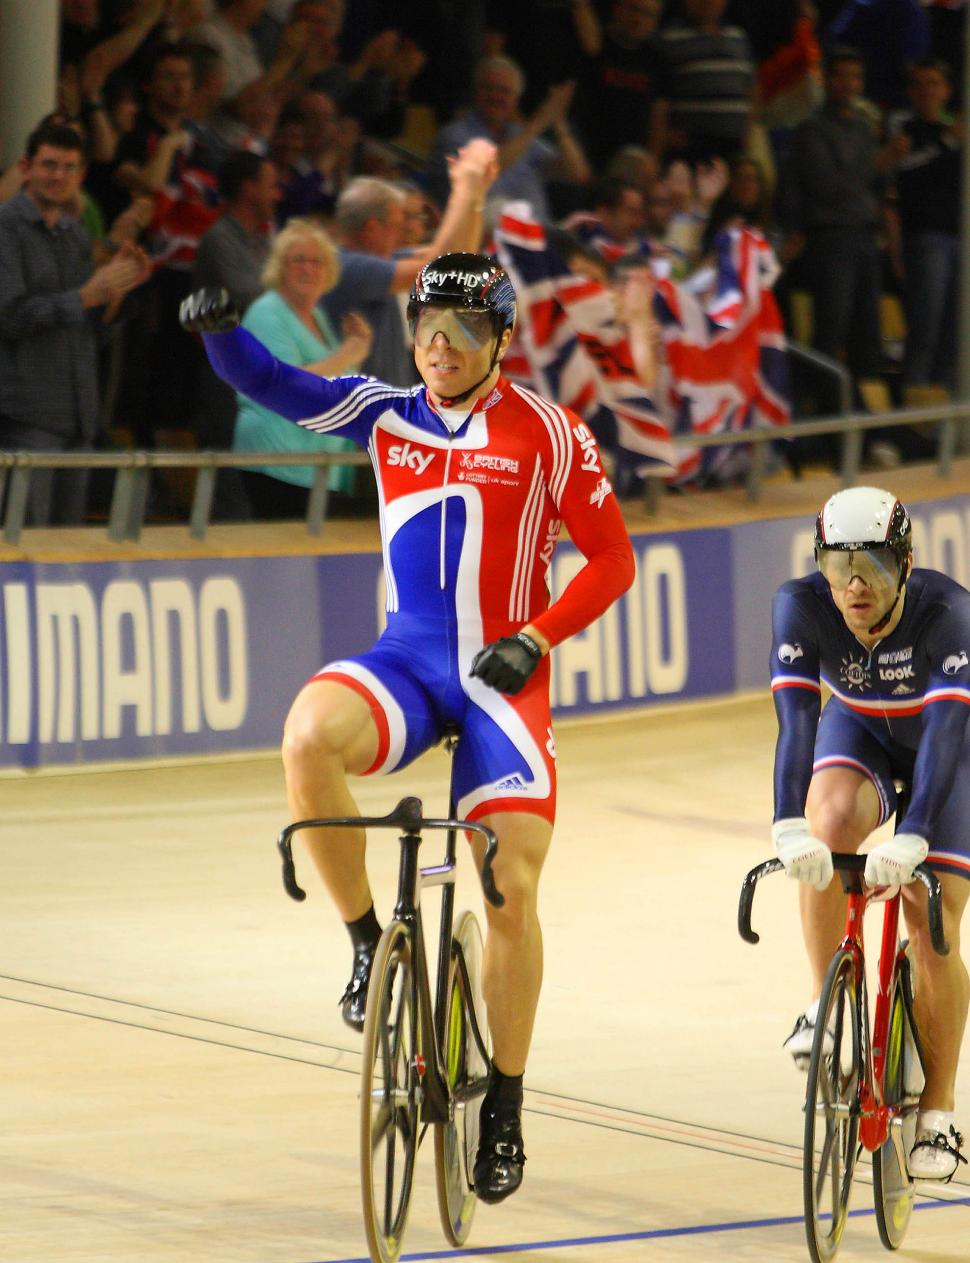 Chris Hoy wins the Keirin, World Track Champs 2010